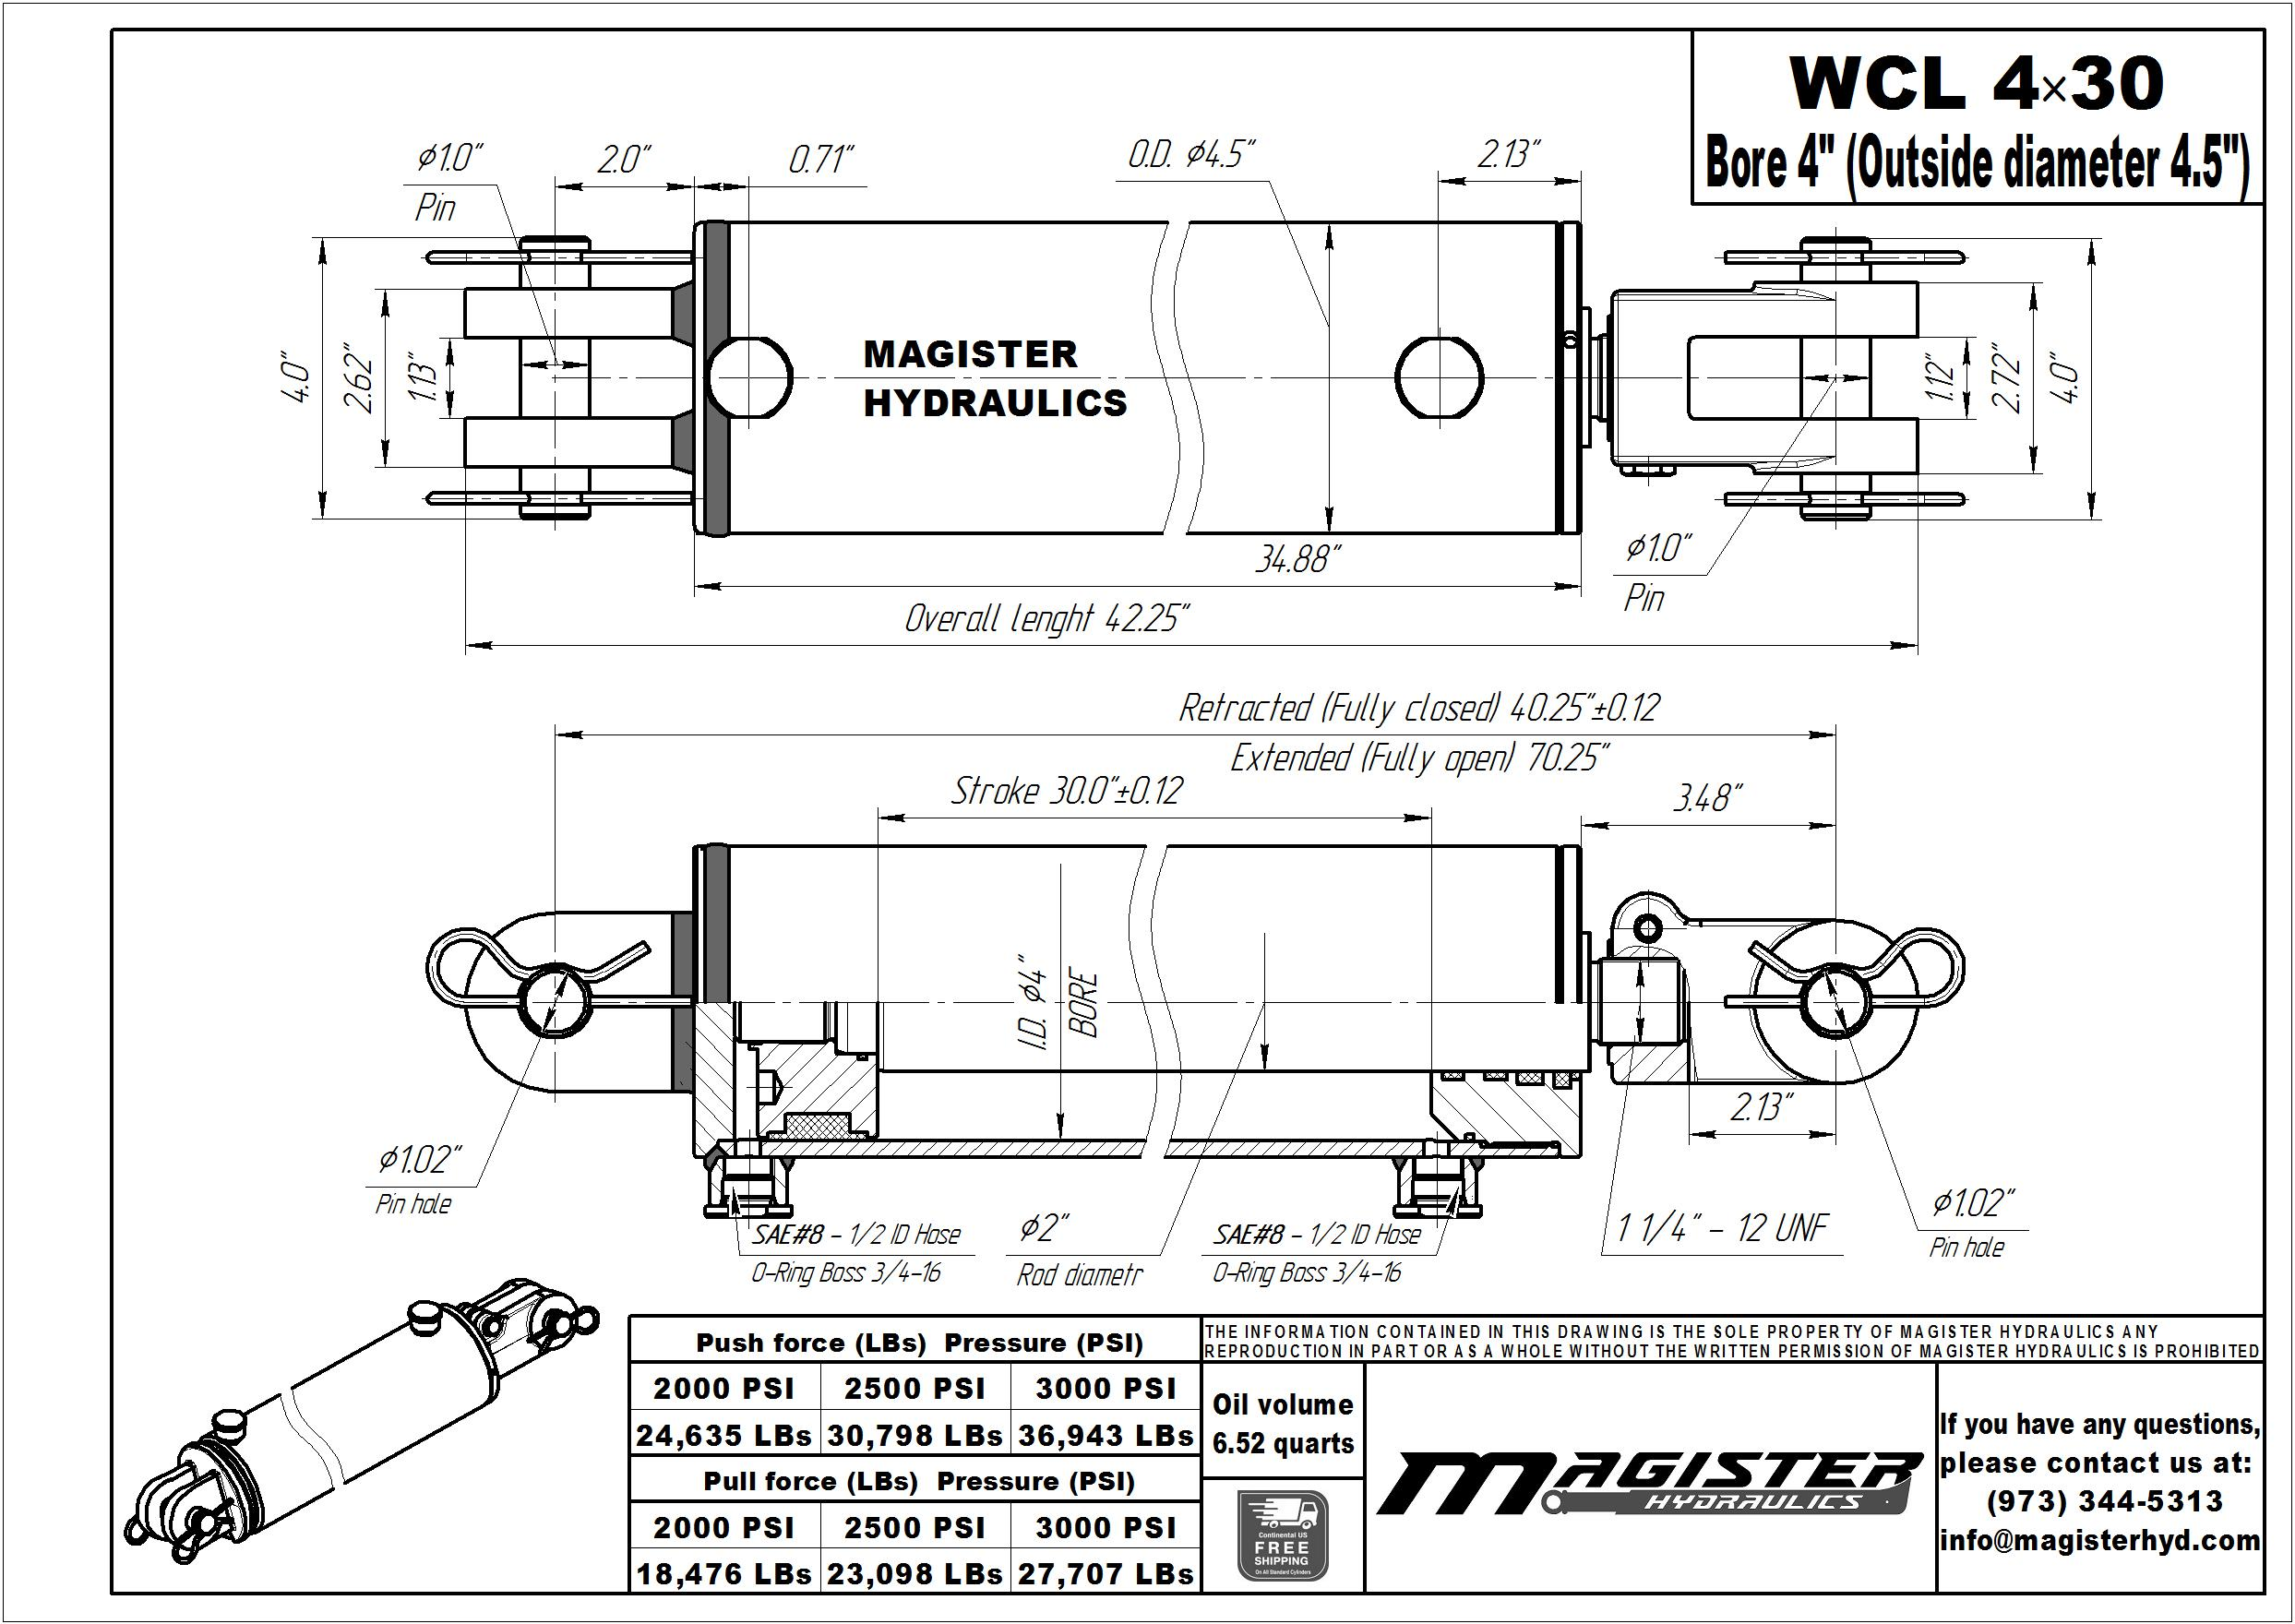 4 bore x 30 stroke hydraulic cylinder, welded clevis double acting cylinder | Magister Hydraulics